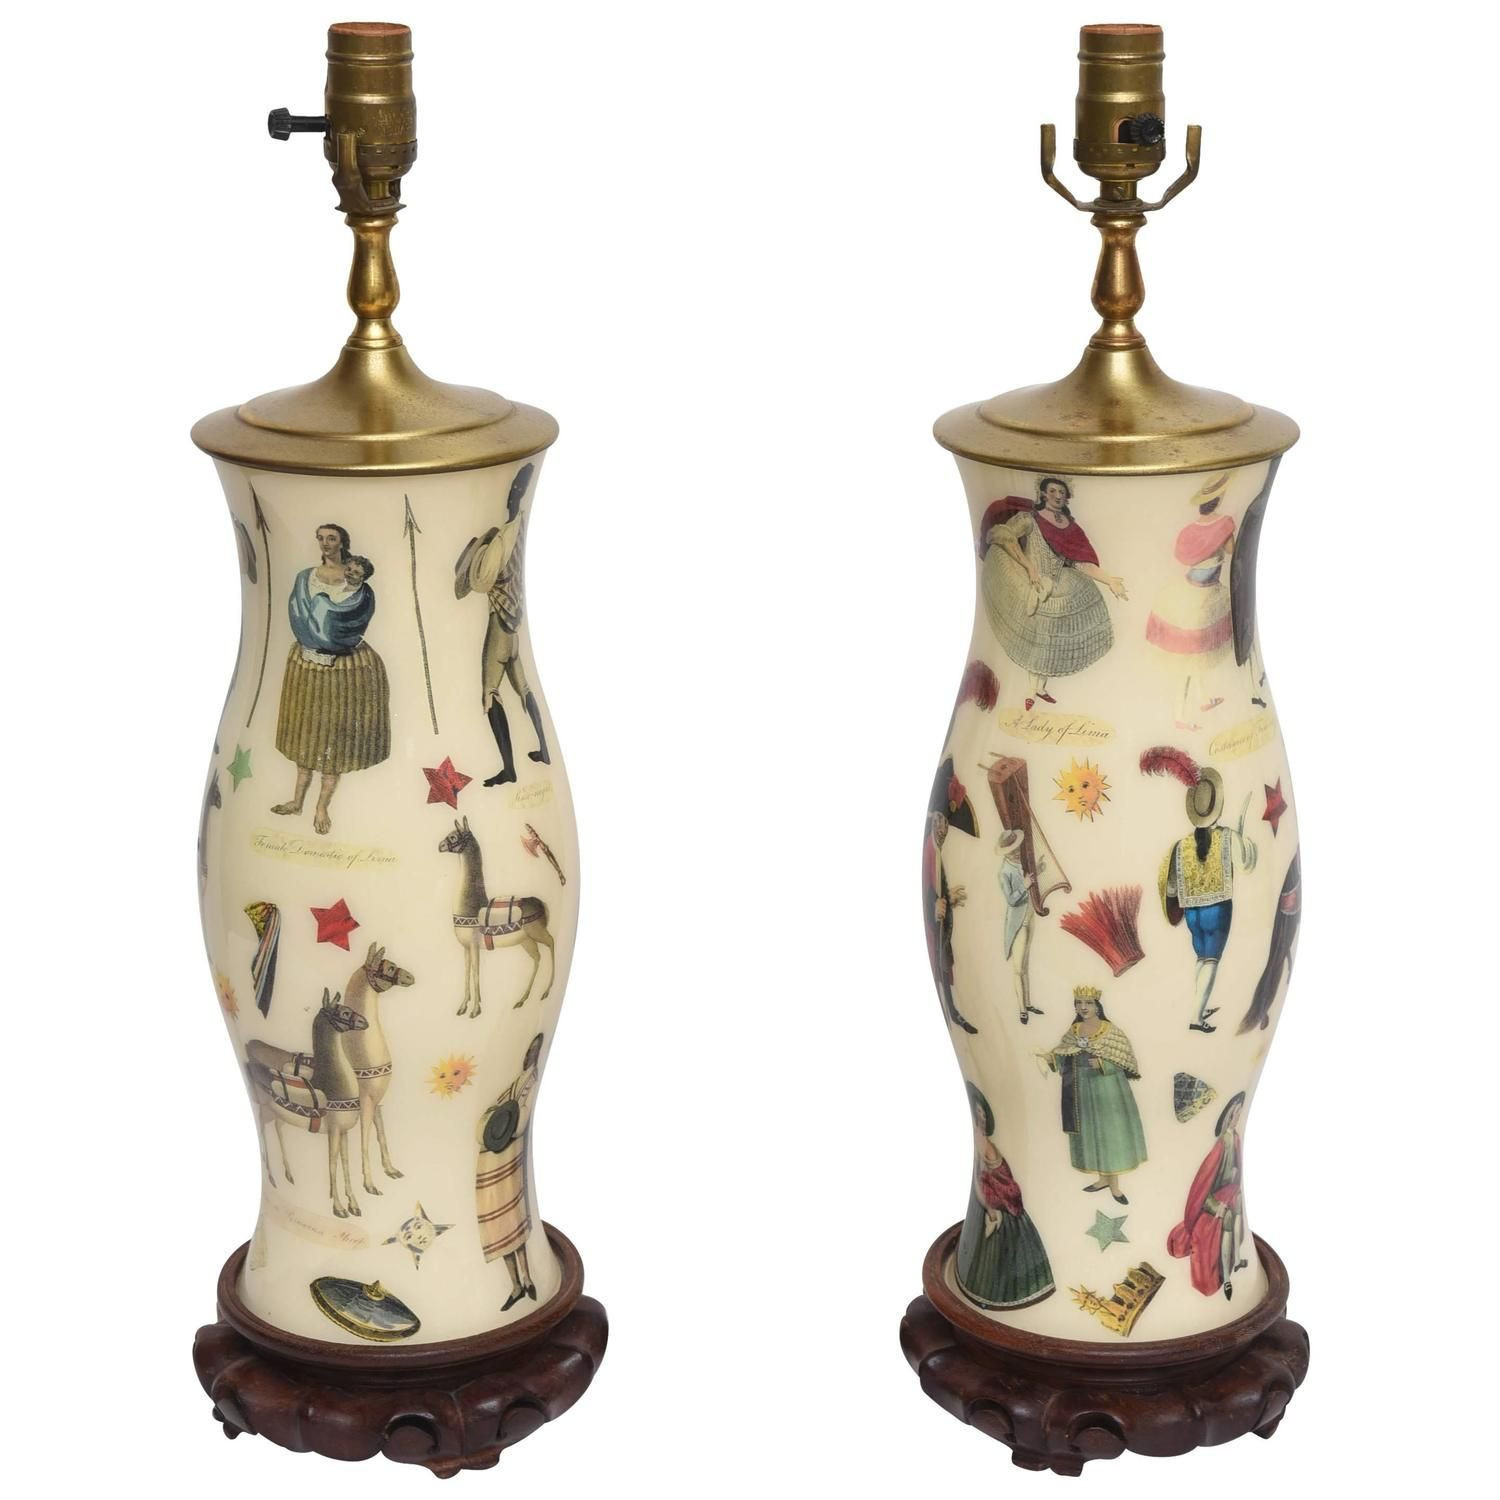 12 Lovely Royal Haeger Vase 2021 free download royal haeger vase of vase with lid gallery chinese ginger jar table lamps new vases within chinese ginger jar table lamps new vases chinese vase with lid